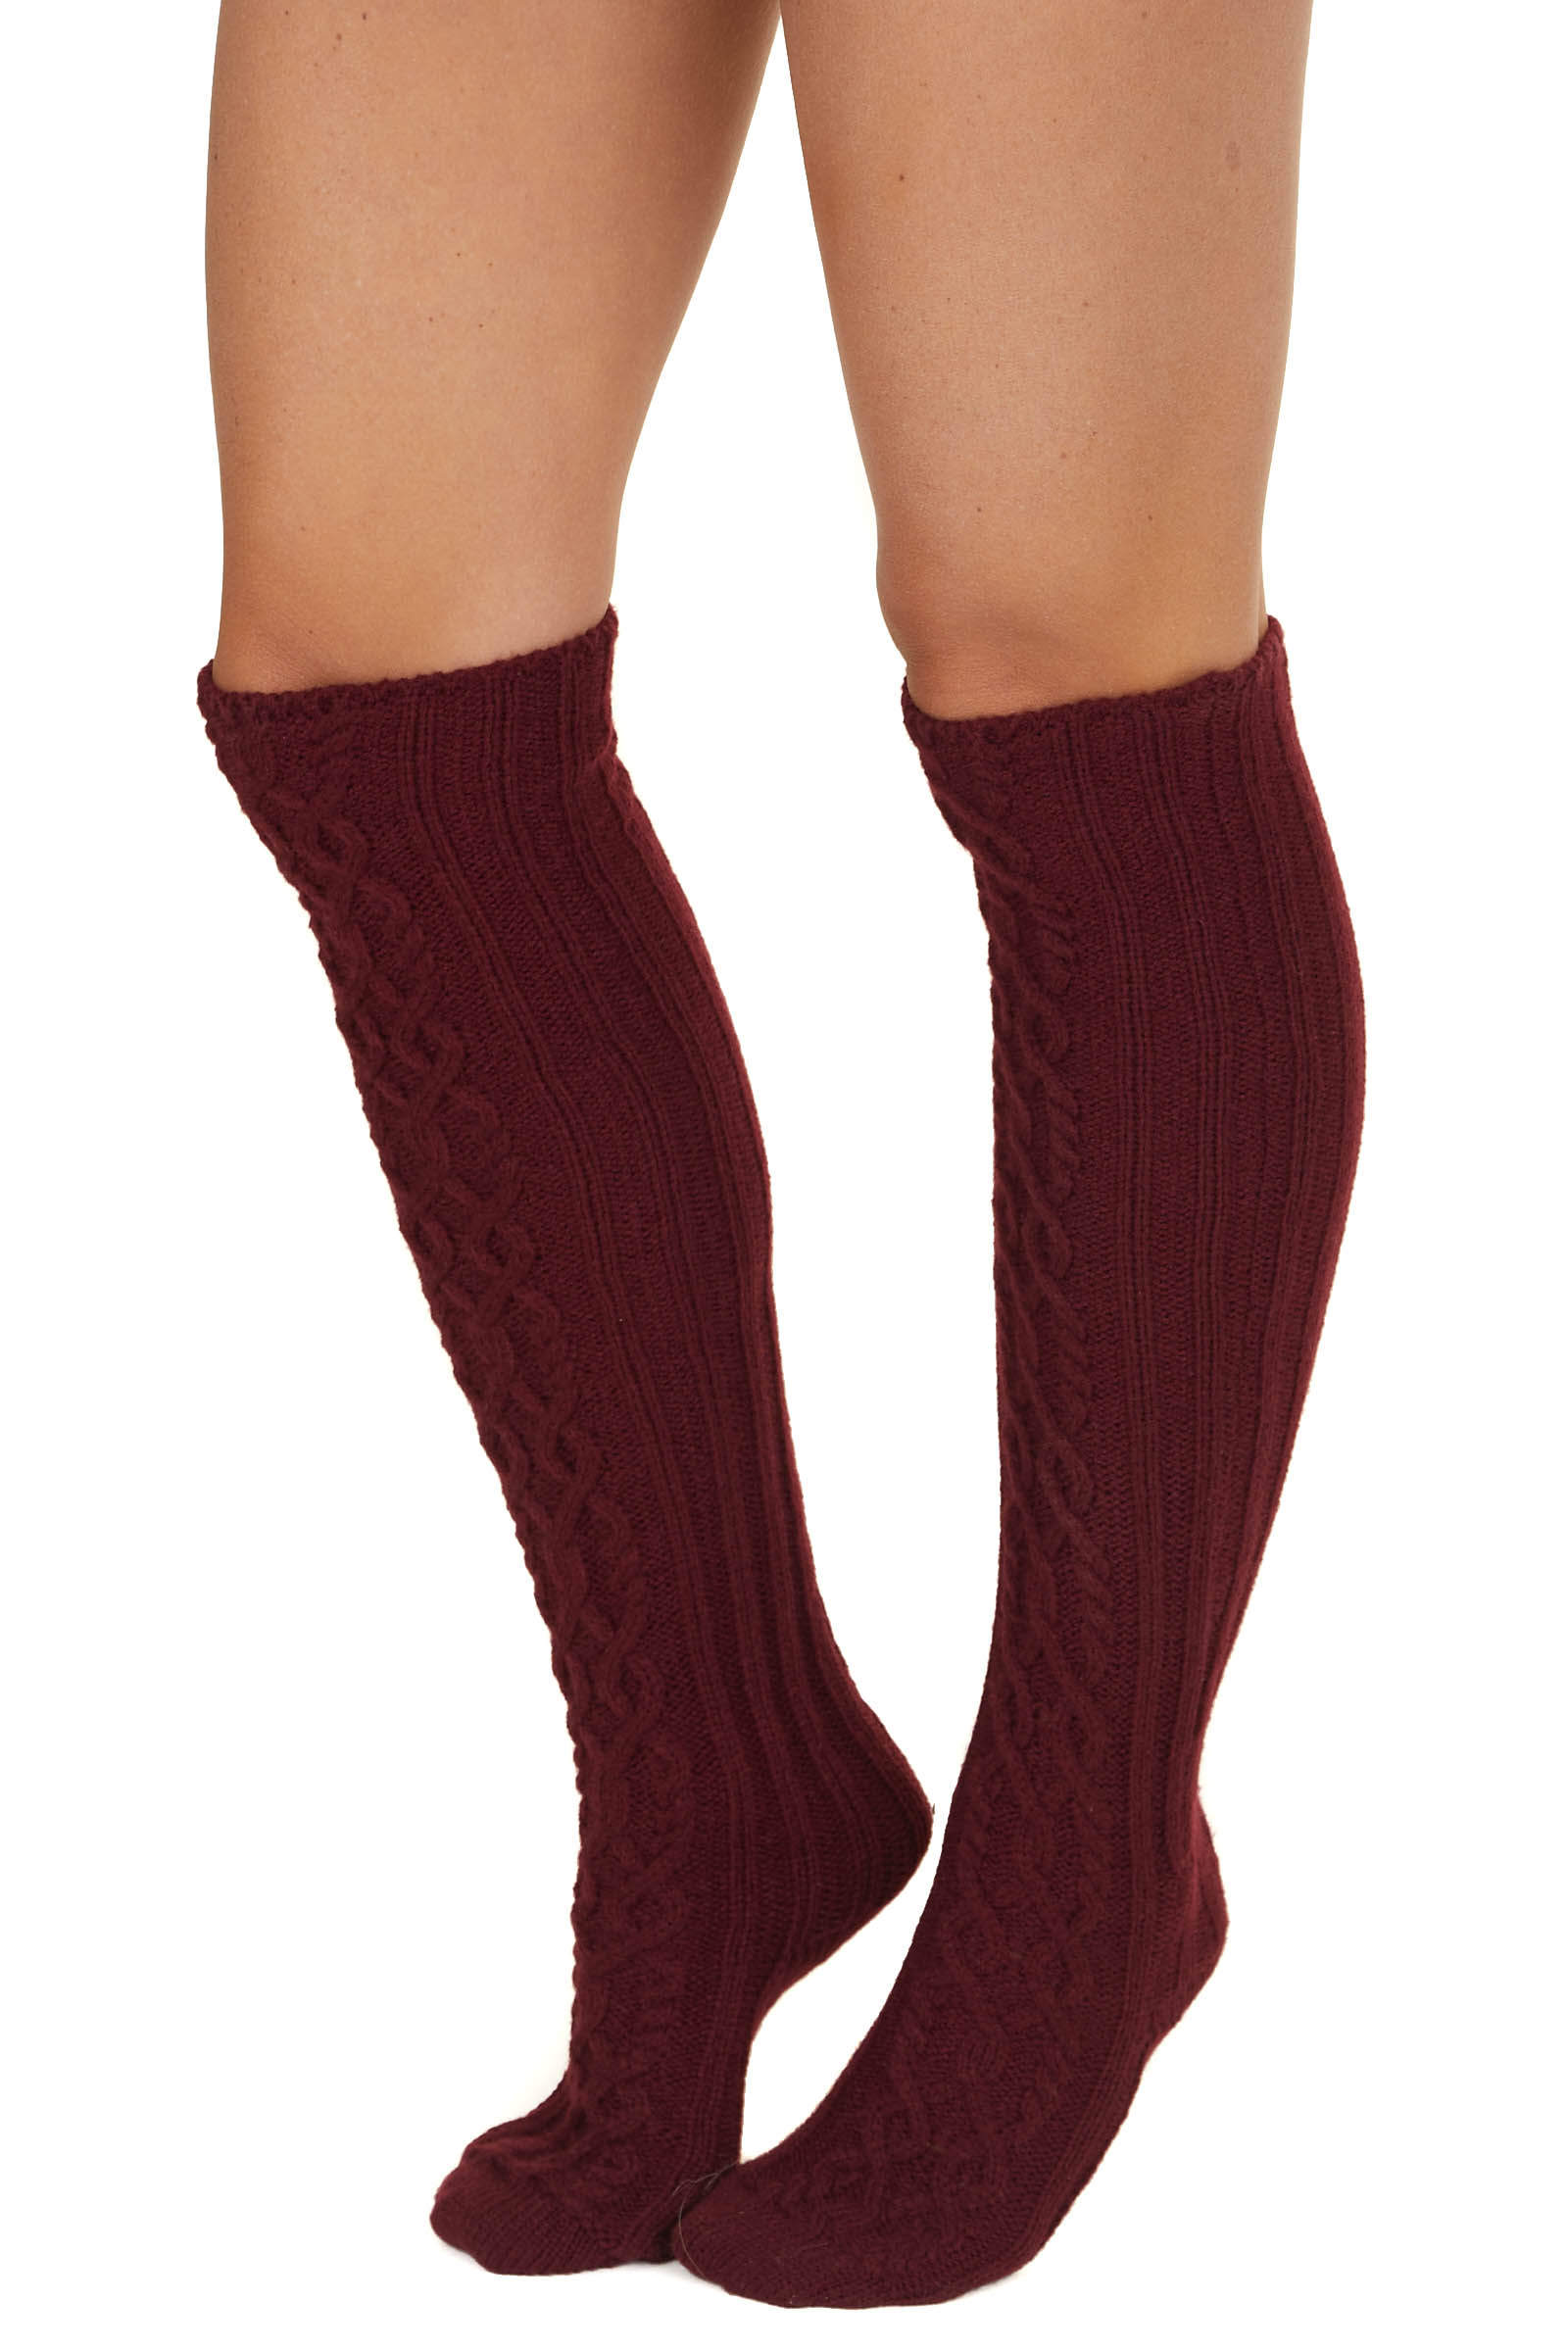 Burgundy Cable Knit Textured Knee High Cozy Socks